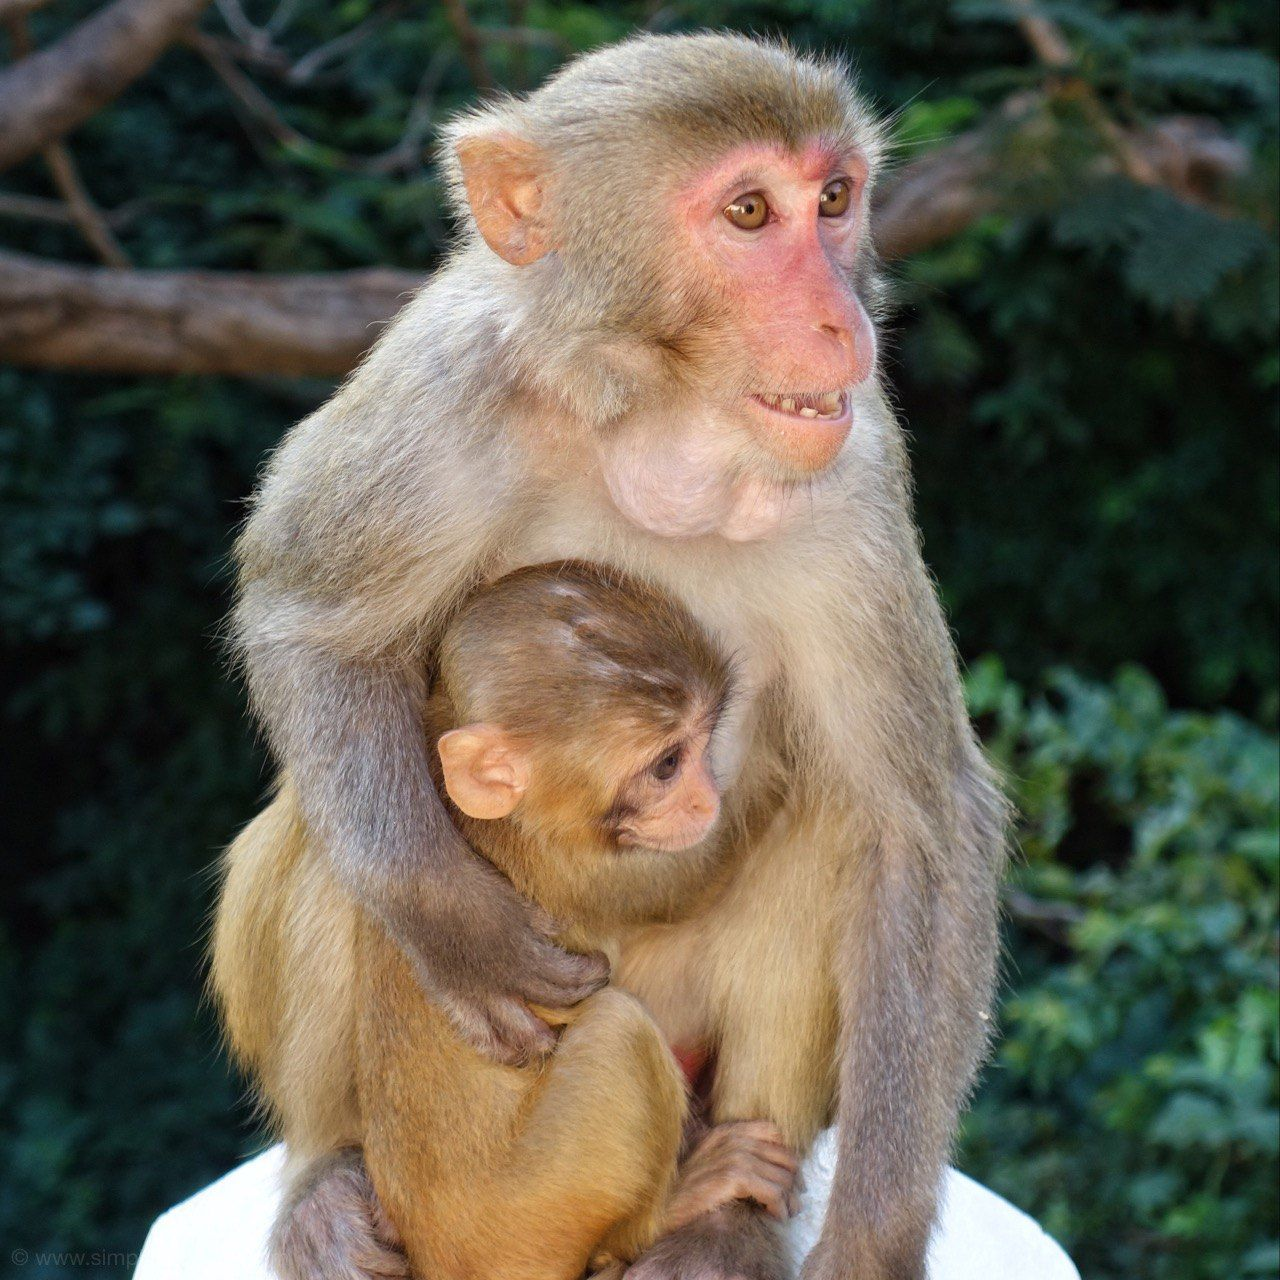 They may look sweet, but beware of the monkey's! The Best Myanmar